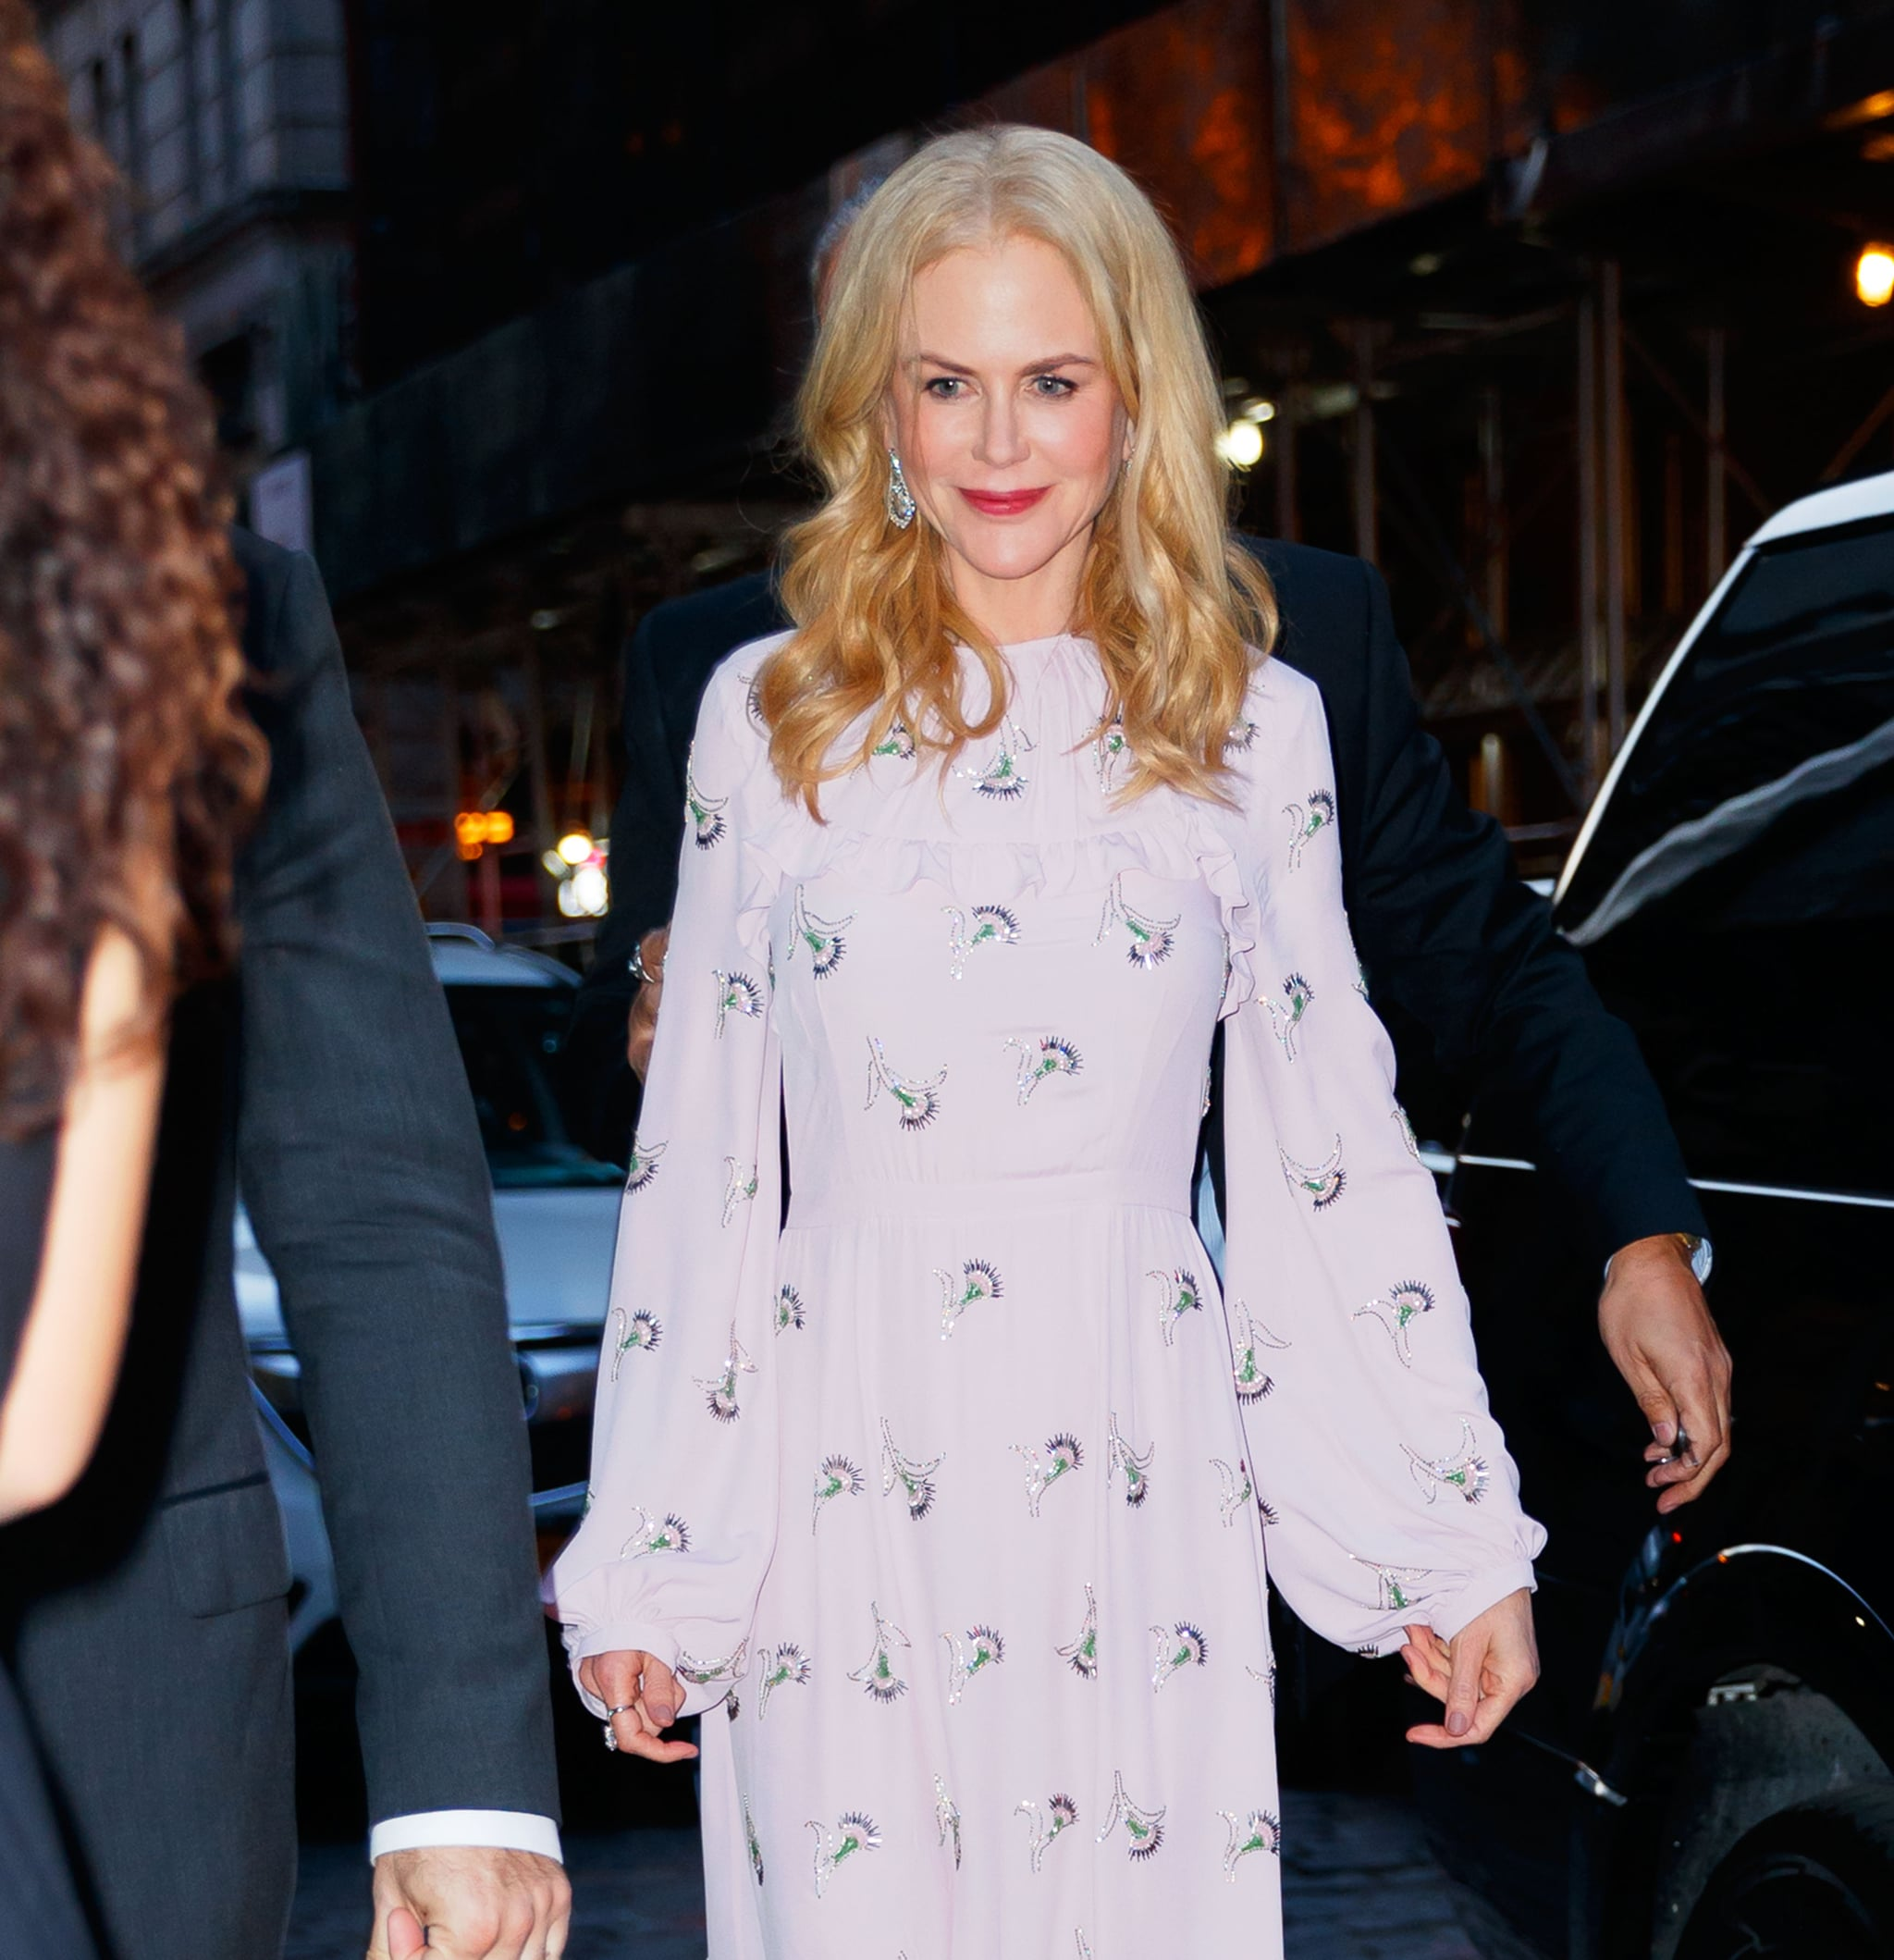 5 Minutes With Nicole Kidman and an Obsession Is Born images 0